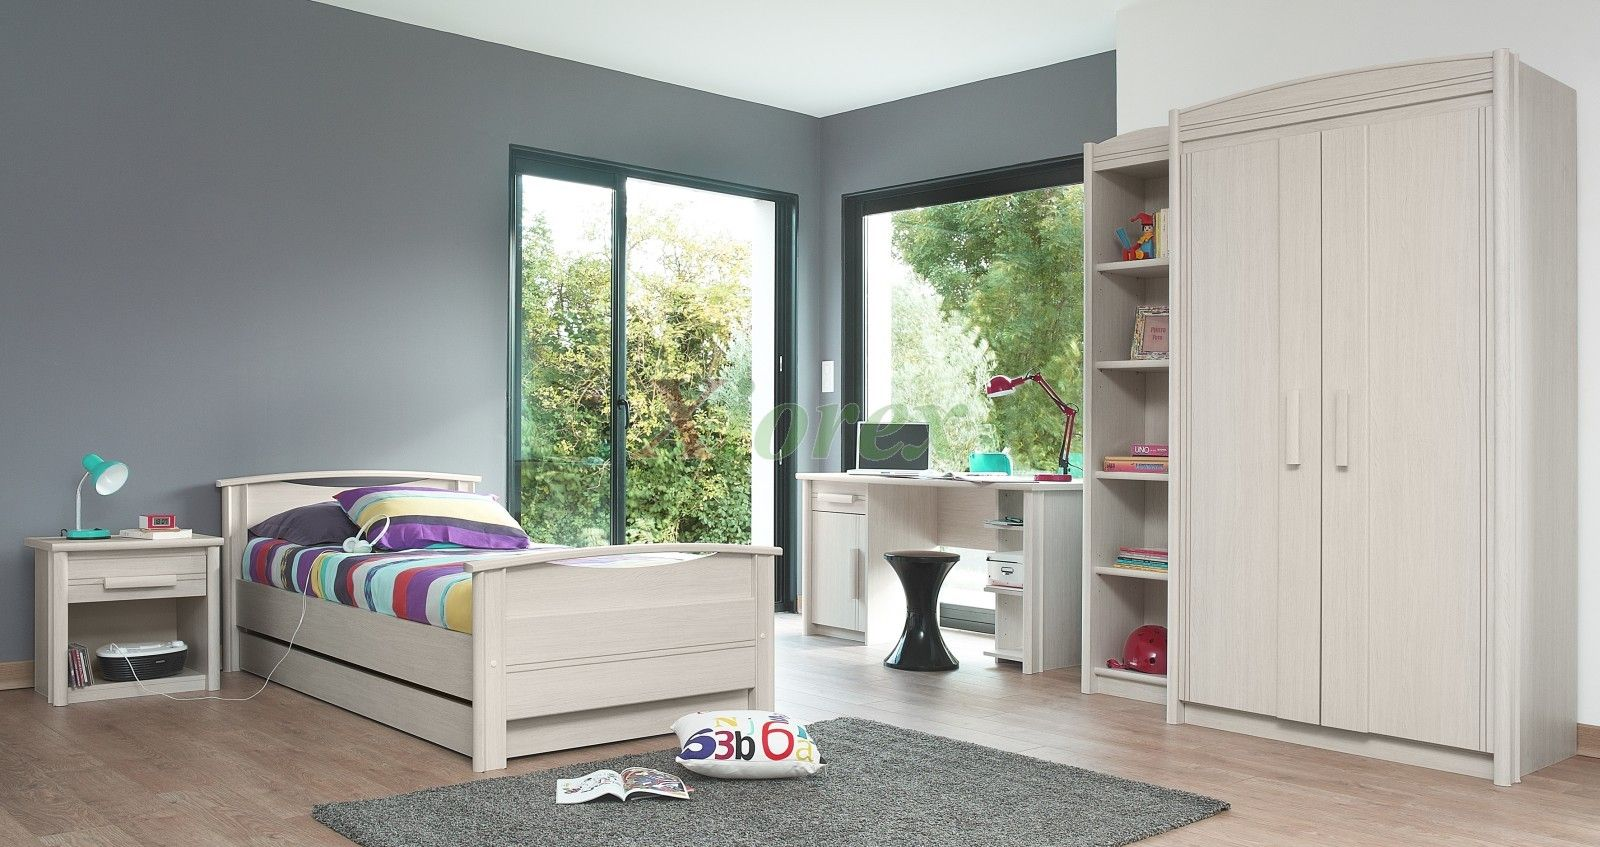 Pin by Xiorex.com on European Furniture in 2019 | Kids bedroom ...